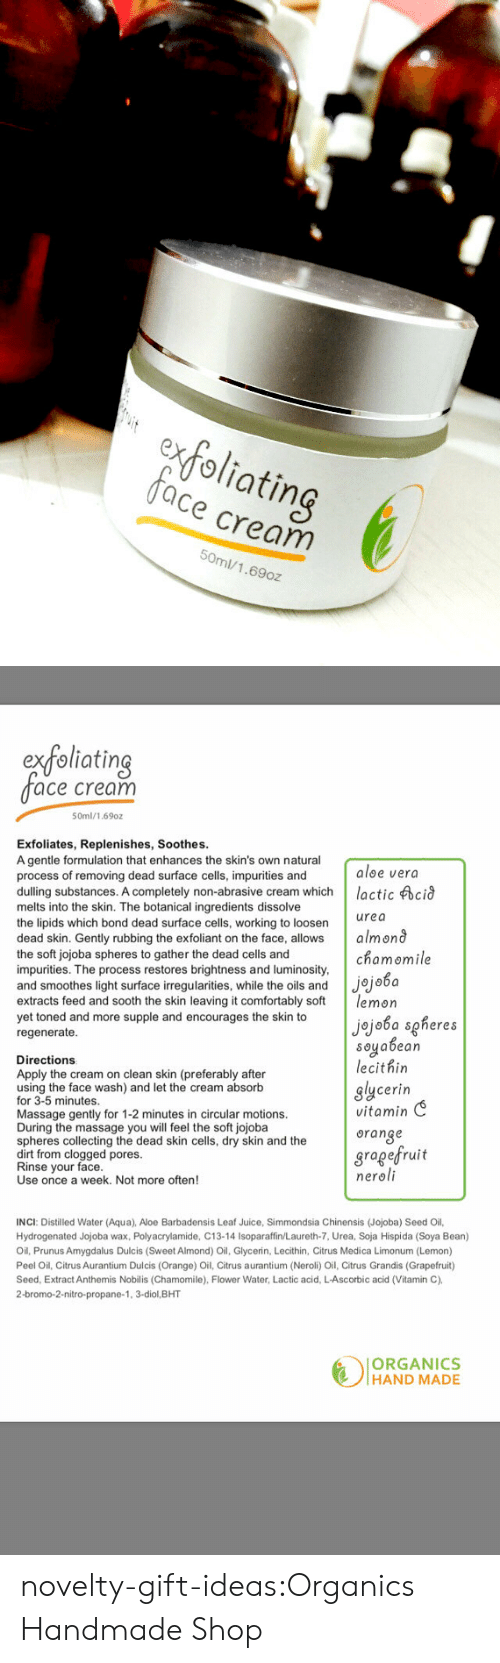 sooth: exfoliating  ace cream  50ml/1.69oz   extoliatin  ace cream  50ml/1.69oz  Exfoliates, Replenishes, Soothes  A gentle formulation that enhances the skin's own natural  process of removing dead surface cells, impurities and  aloe vera  dulling substances. A completely non-abrasive cream whichlactic cid  melts into the skin. The botanical ingredients dissolve  the lipids which bond dead surface cells, working to loosern  dead skin. Gently rubbing the exfoliant on the face, allows almond  the soft jojoba spheres to gather the dead cells and  impurities. The process restores brightness and luminosity  and smoothes light surface irregularities, while the oils and Jjo6a  extracts feed and sooth the skin leaving it comfortably so lemon  yet toned and more supple and encourages the skin to  regenerate  urea  chamomile  Directions  Apply the cream on clean skin (preferably after  using the face wash) and let the cream absorb  for 3-5 minutes  Massage gentl  During the massage you will feel the soft jojoba  spheres collecting the dead skin cells, dry skin and the  dirt from clogged pores  Rinse your face  Use once a week. Not more often  jojoba sgheres  soyabean  lecithin  glycerin  vitamin C  oranse  gragefruit  neroli  y for 1-2 minutes in circular motions.  INCI: Distilled Water (Aqua), Aloe Barbadensis Leaf Juice, Simmondsia Chinensis (Jojoba) Seed Oil,  Hydrogenated Jojoba wax, Polyacrylamide, C13-14 Isoparaffin/Laureth-7, Urea, Soja Hispida (Soya Bean)  Oil, Prunus Amygdalus Dulcis (Sweet Almond) Oil, Glycerin, Lecithin, Citrus Medica Limonum (Lemon)  Peel Oil, Citrus Aurantium Dulcis (Orange) Oil, Citrus aurantium (Neroli) Oil, Citrus Grandis (Grapefruit)  Seed, Extract Anthemis Nobilis (Chamomile), Flower Water, Lactic acid, L-Ascorbic acid (Vitamin C),  2-bromo-2-nitro-propane-1, 3-diol,BHT  ORGANICS  HAND MADE novelty-gift-ideas:Organics Handmade Shop